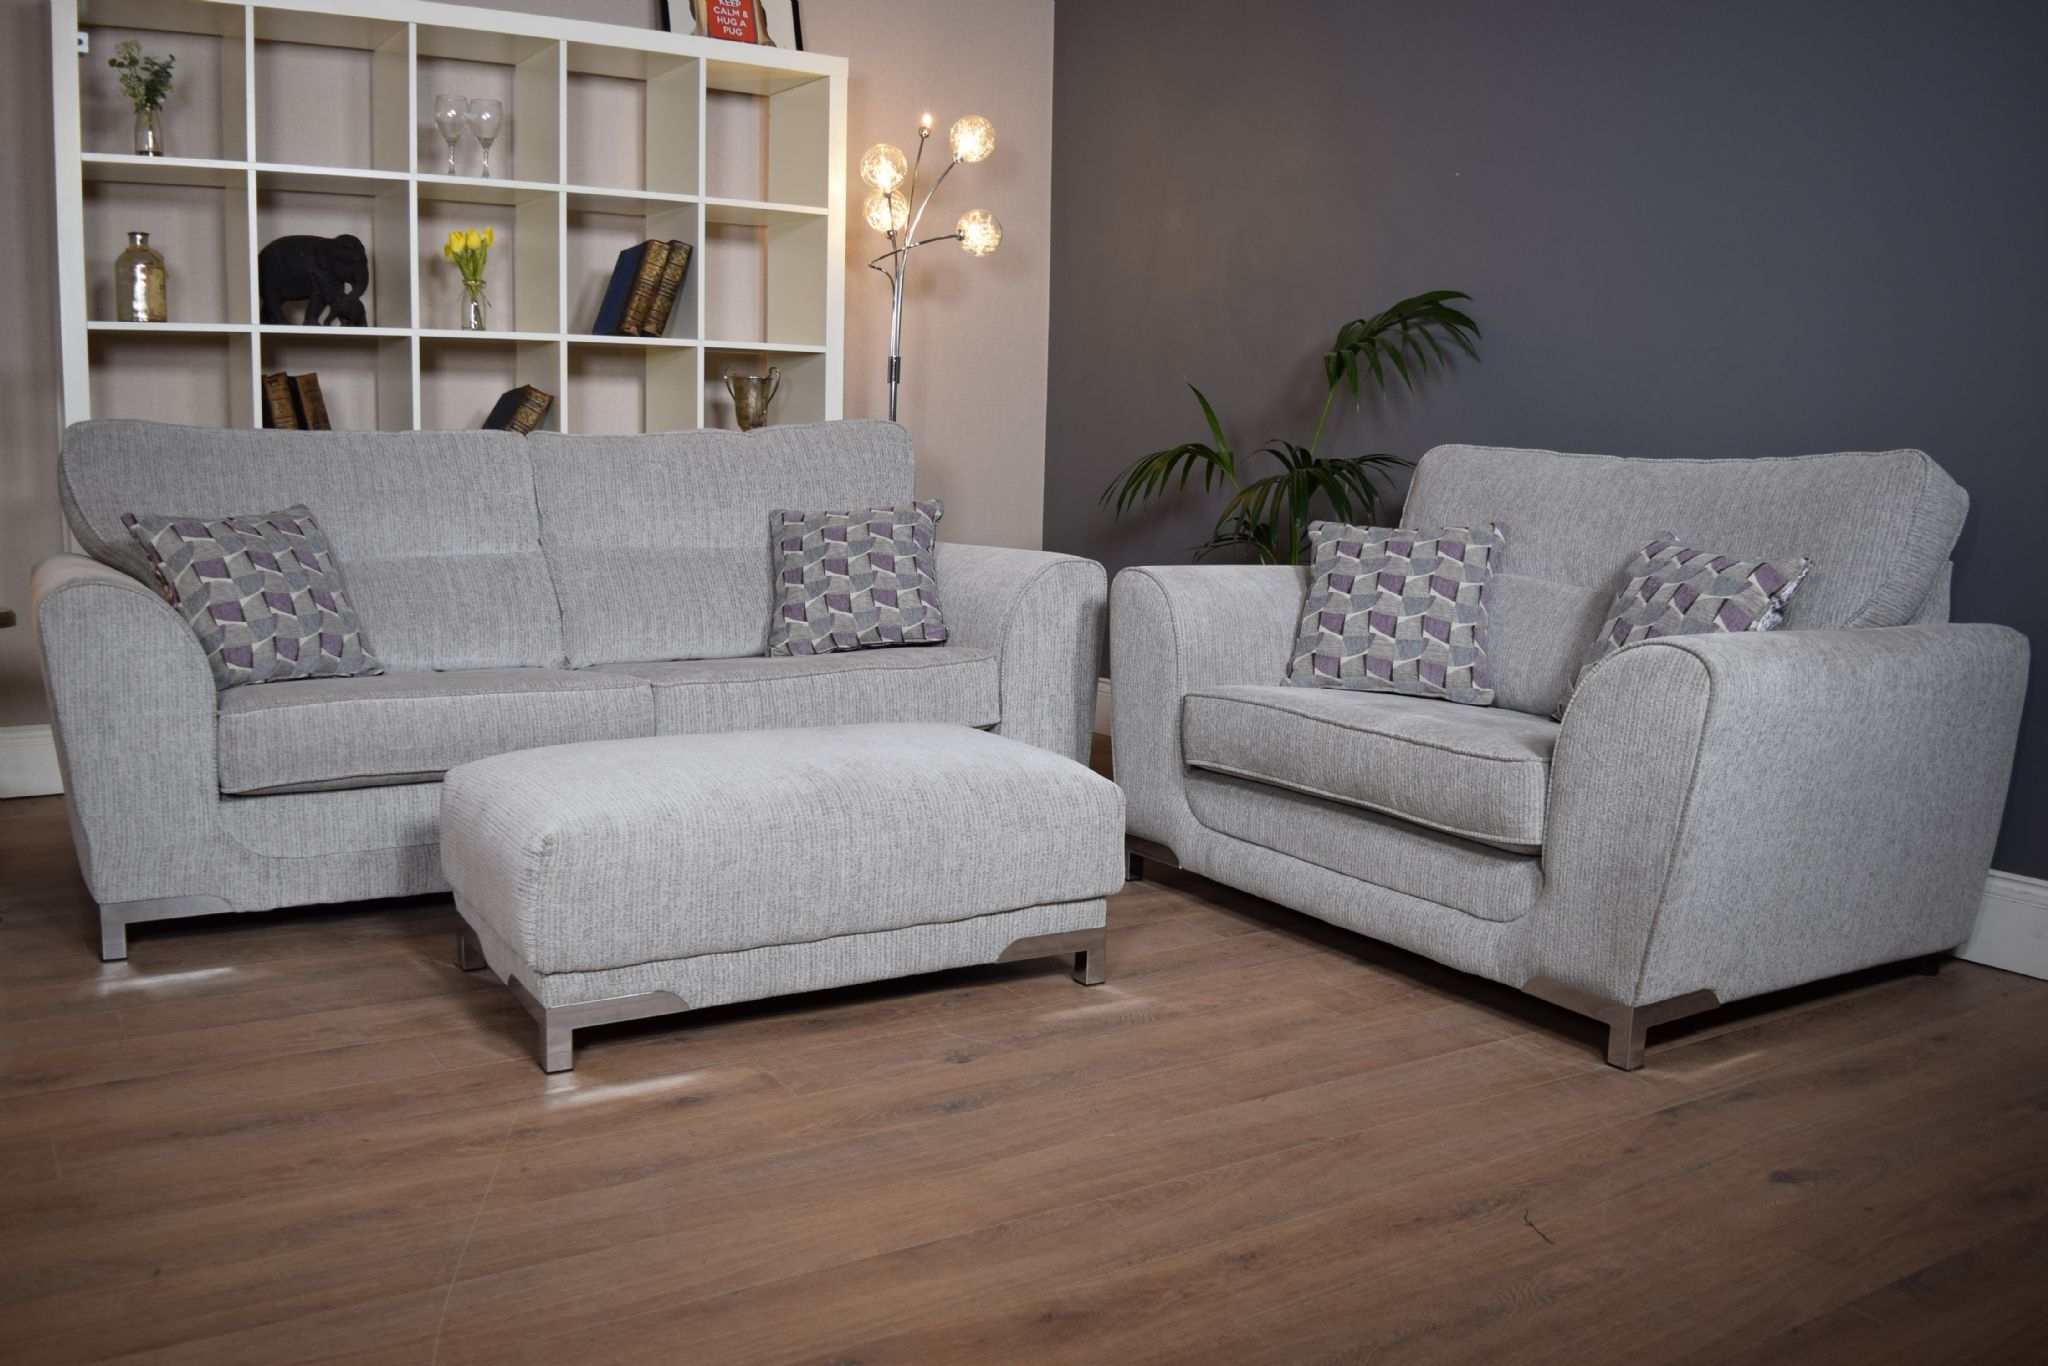 Set Nikki 3 Seater Sofa Cuddle Chair & Footstool Suite Set – Light Regarding 3 Seater Sofas And Cuddle Chairs (View 8 of 10)